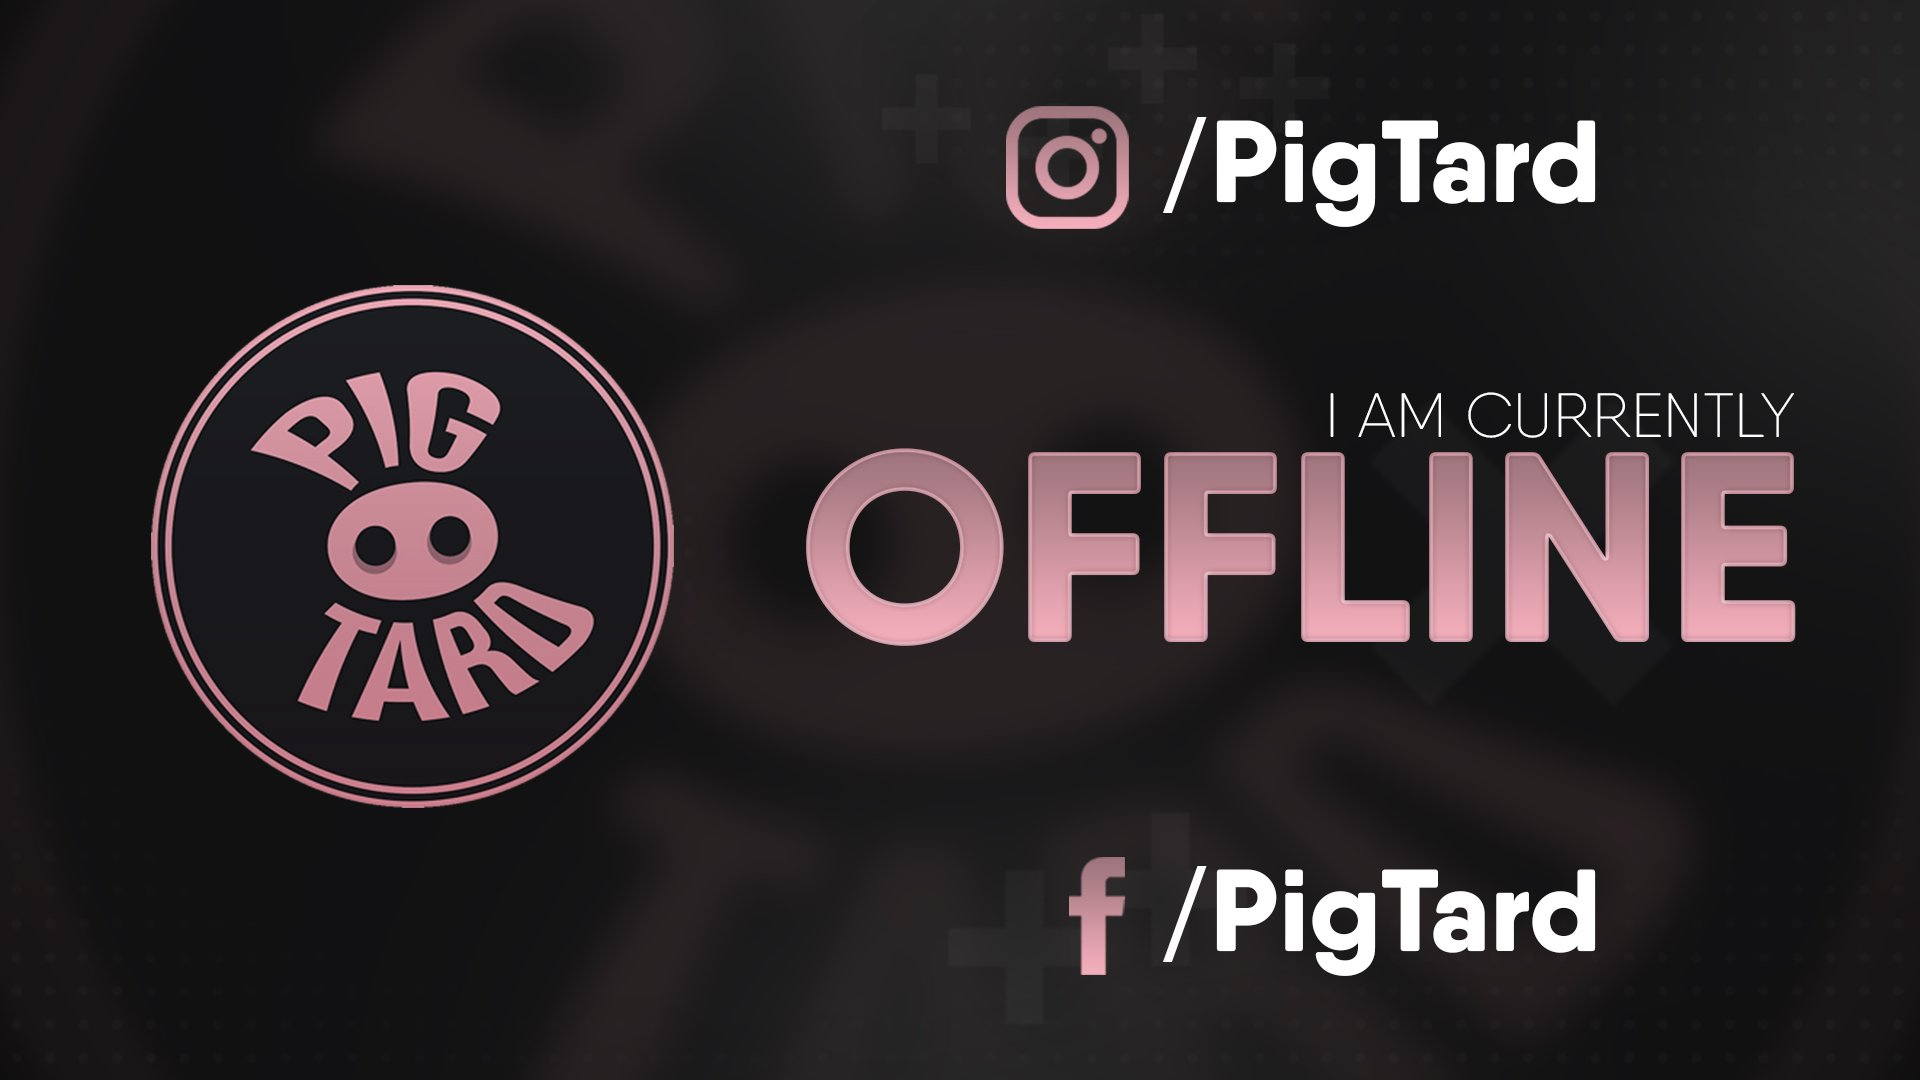 Twitch stream of PigTard